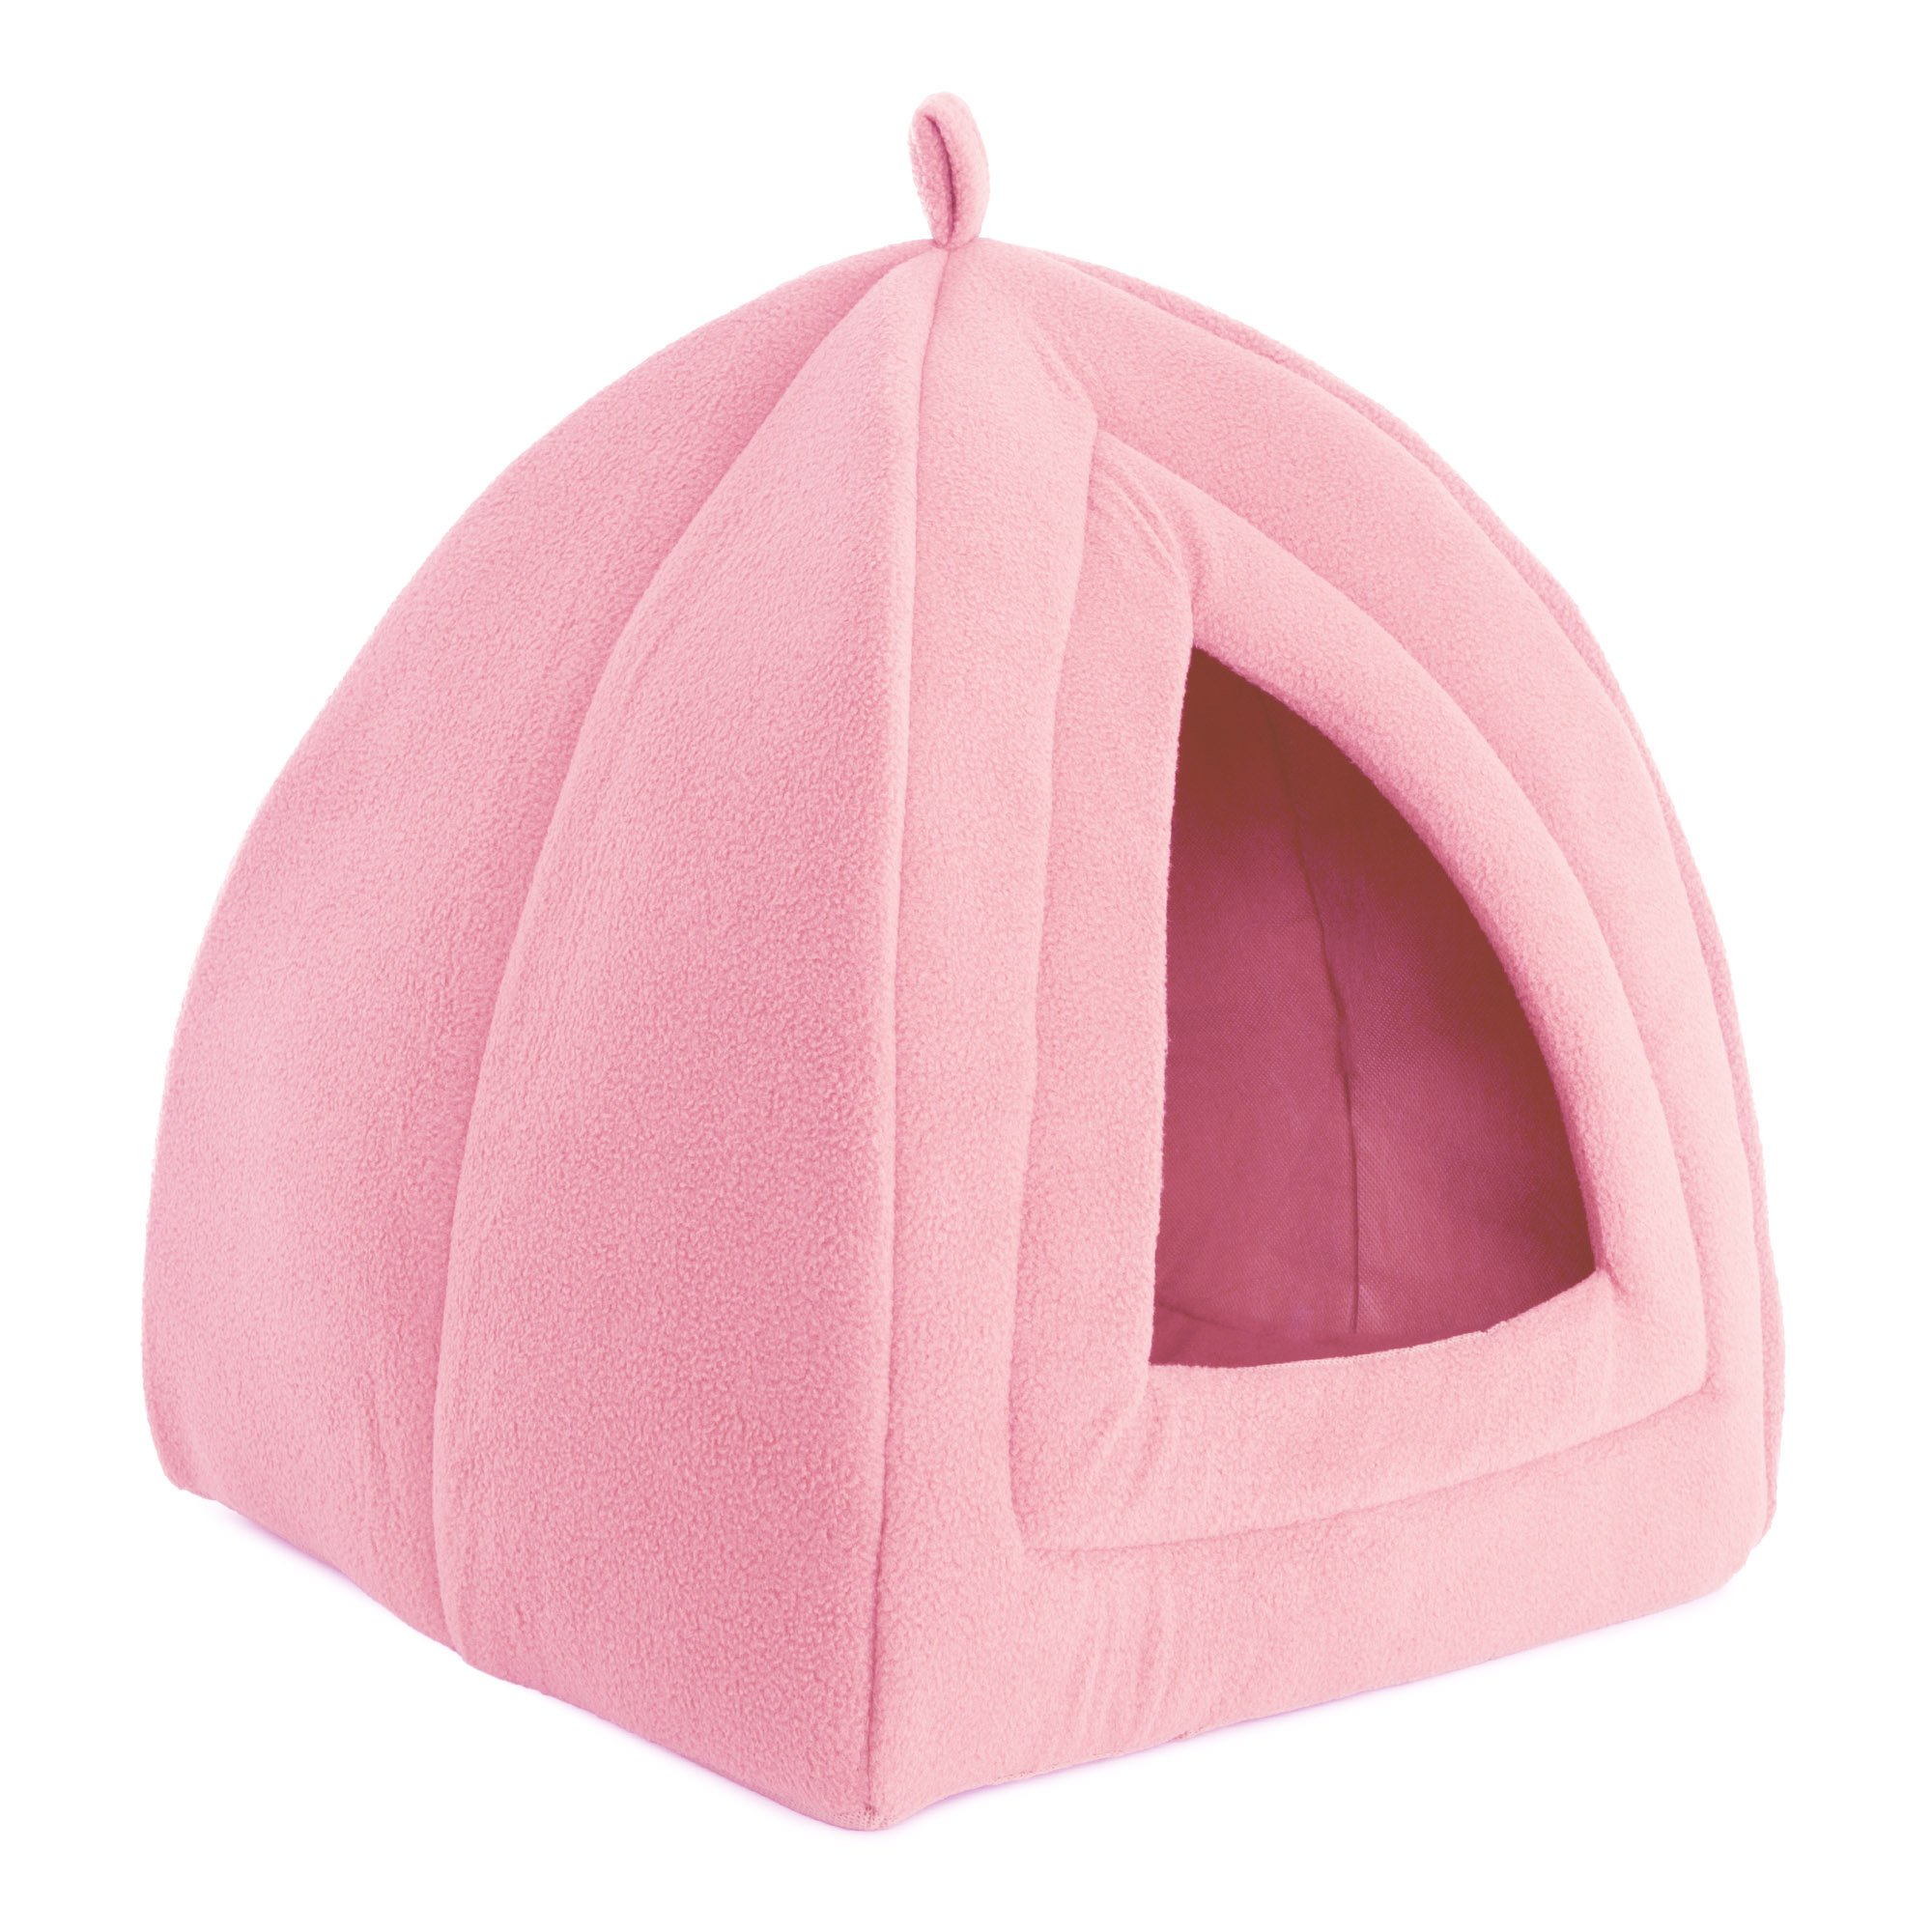 PETMAKER Cat Pet Bed, Igloo- Soft Indoor Enclosed Covered Tent/House Cats, Kittens Small Pets Removable Cushion Pad (Pink)